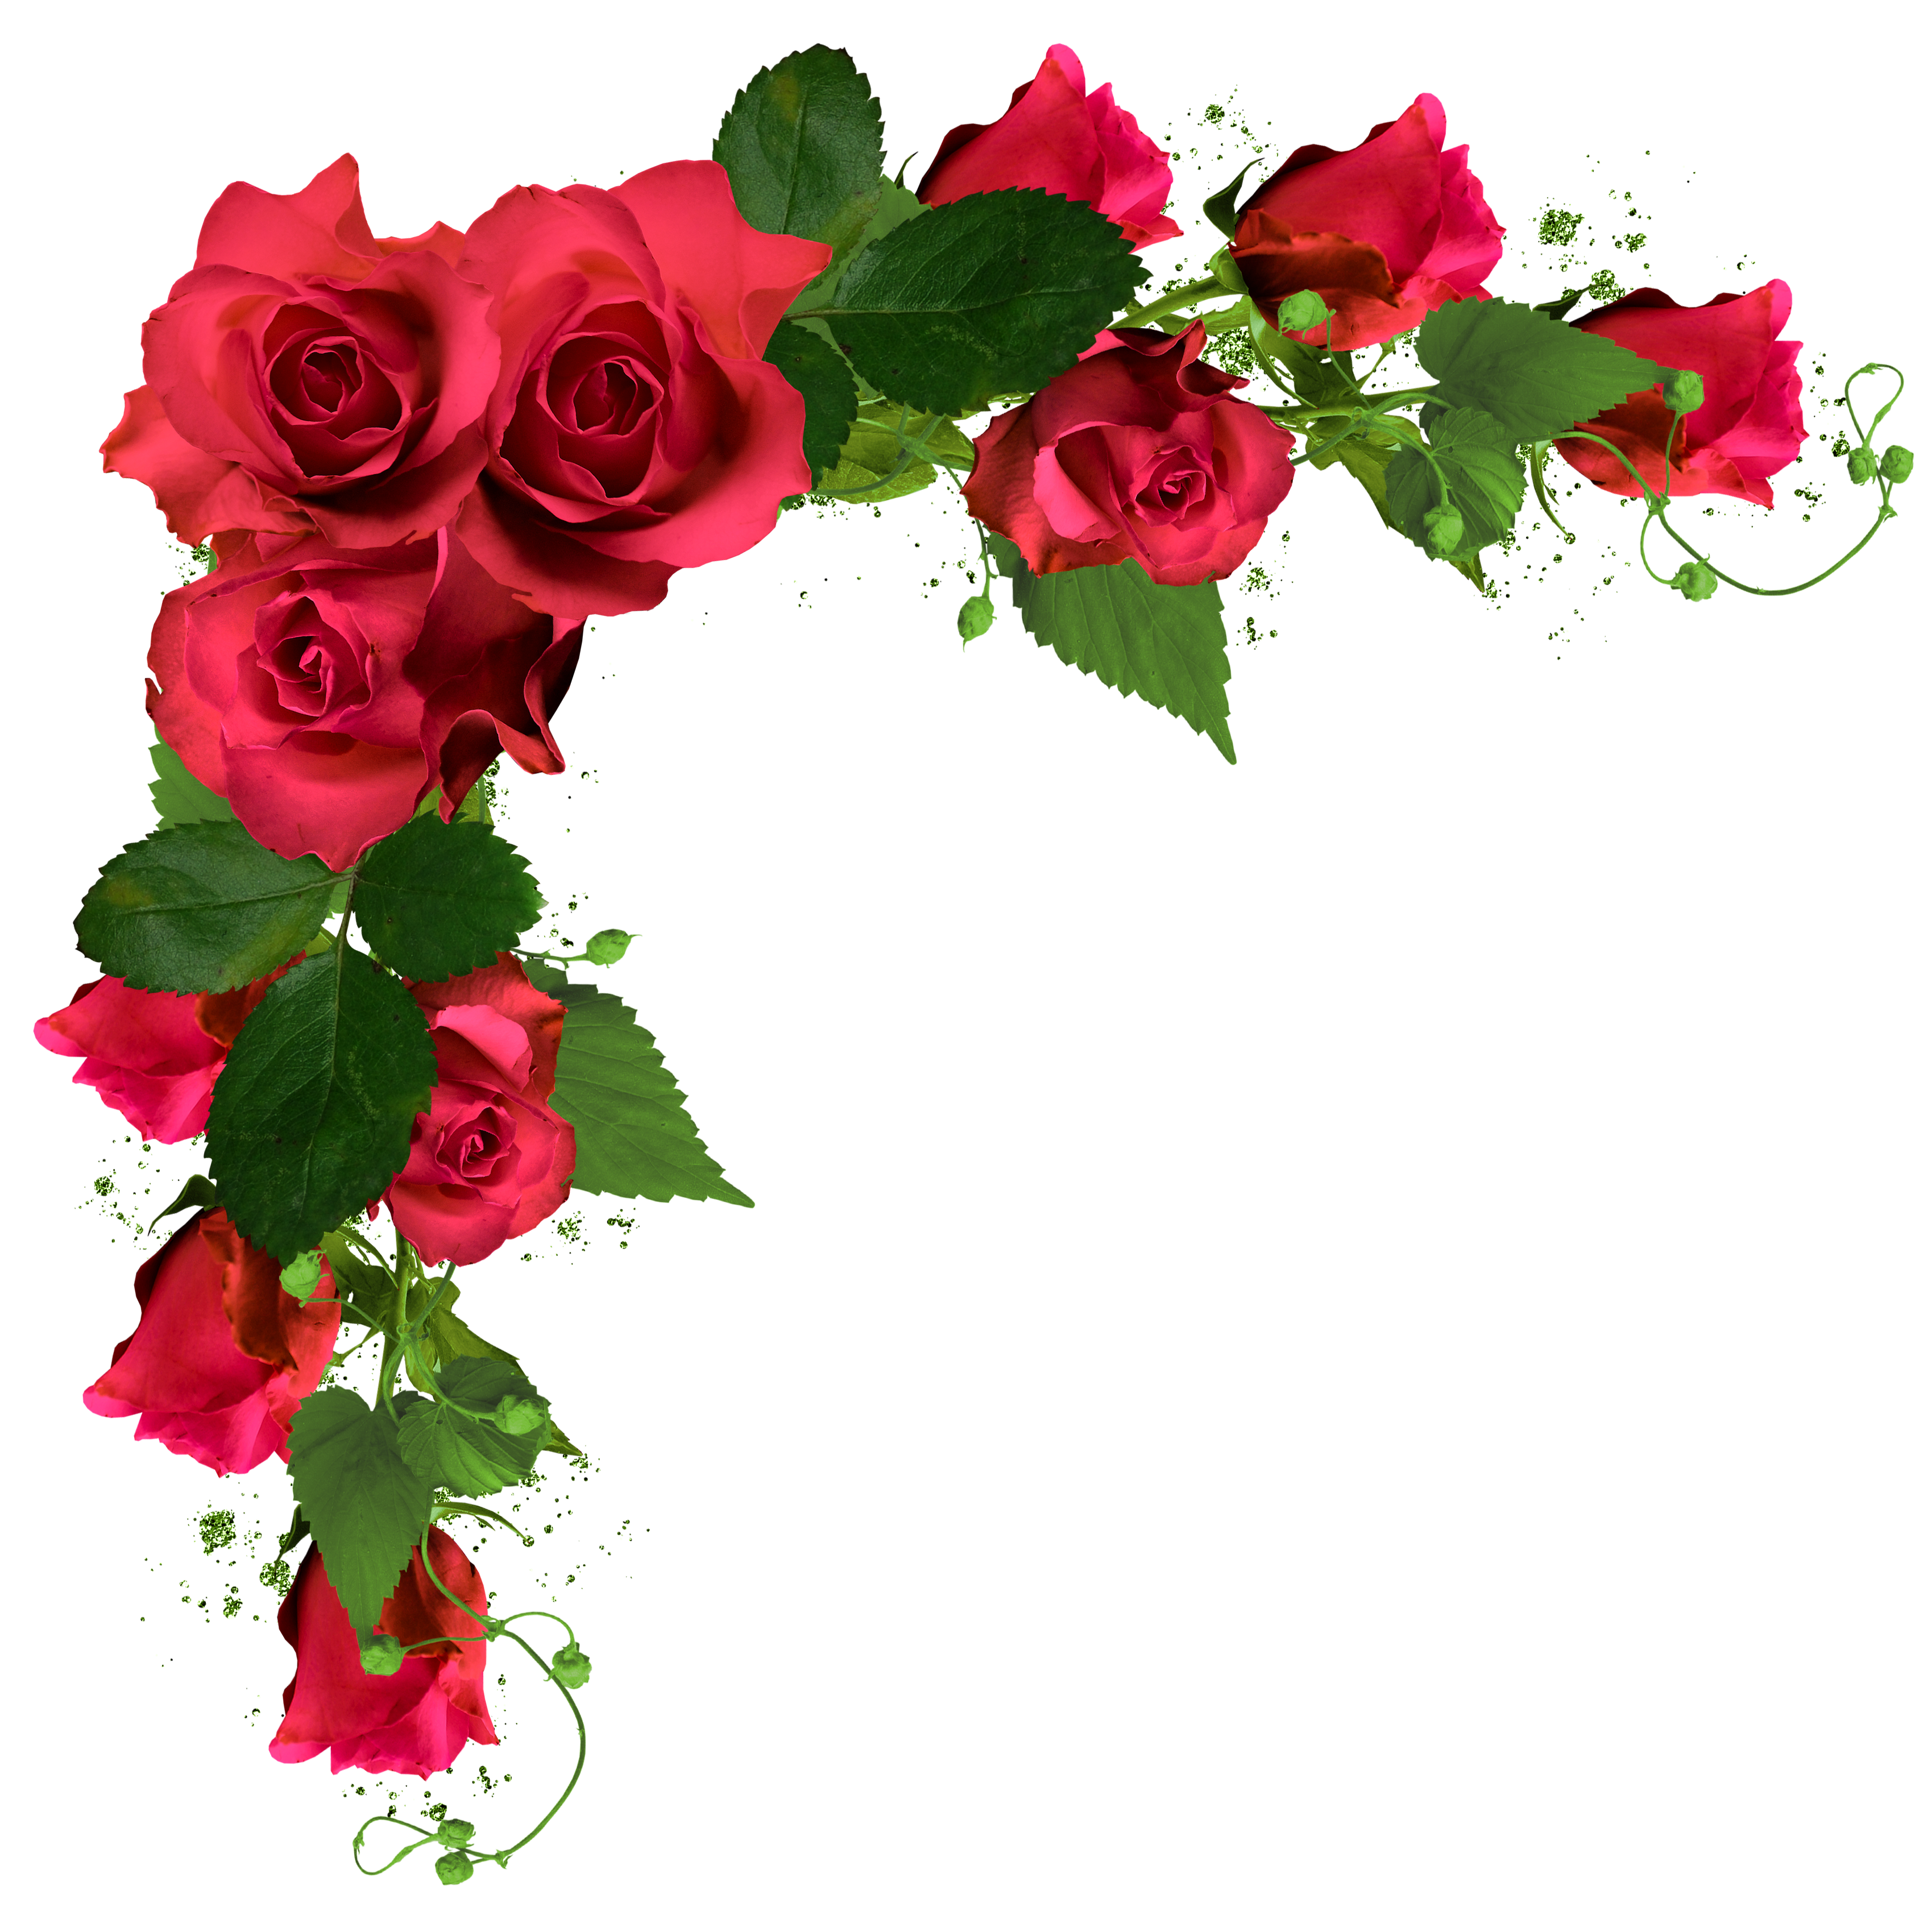 Rose clipart sympathy flower #11